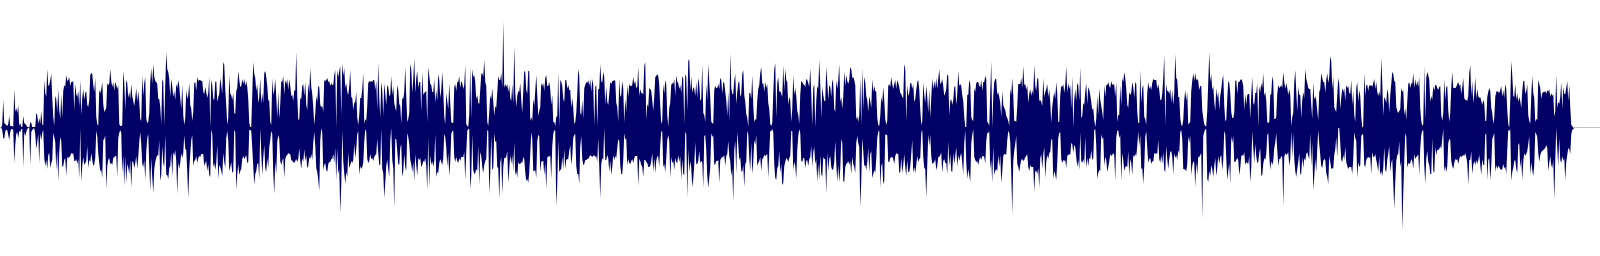 waveform of track #117443